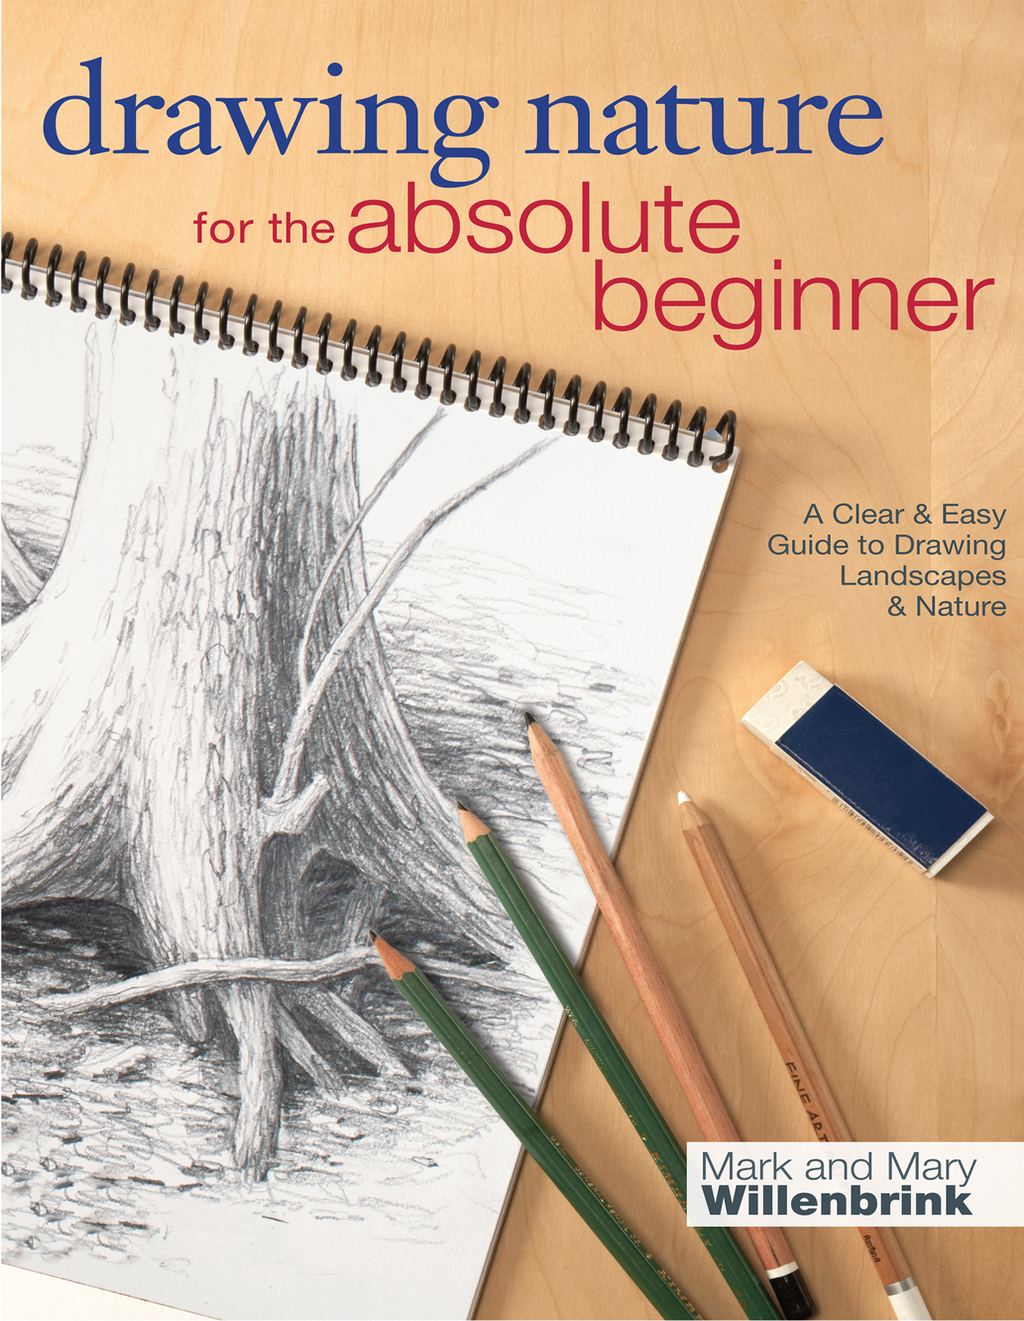 Drawing Nature for the Absolute Beginner A Clear & Easy Guide to Drawing Landscapes & Nature